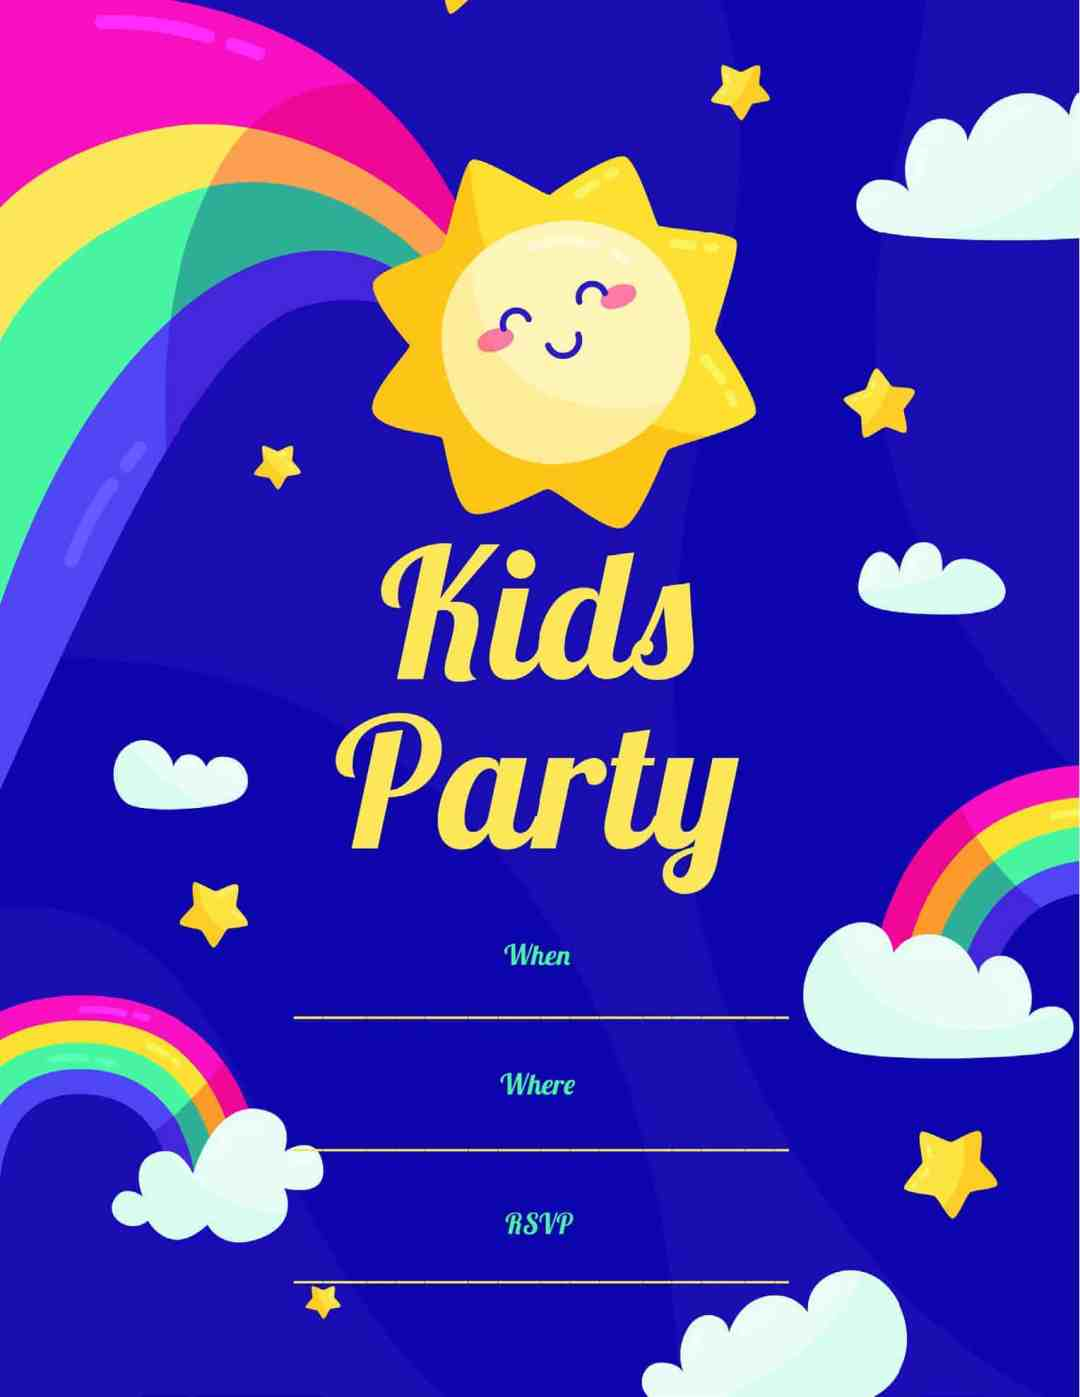 Kids Party - Rainbow Sunshine Clouds - All Free Invitation